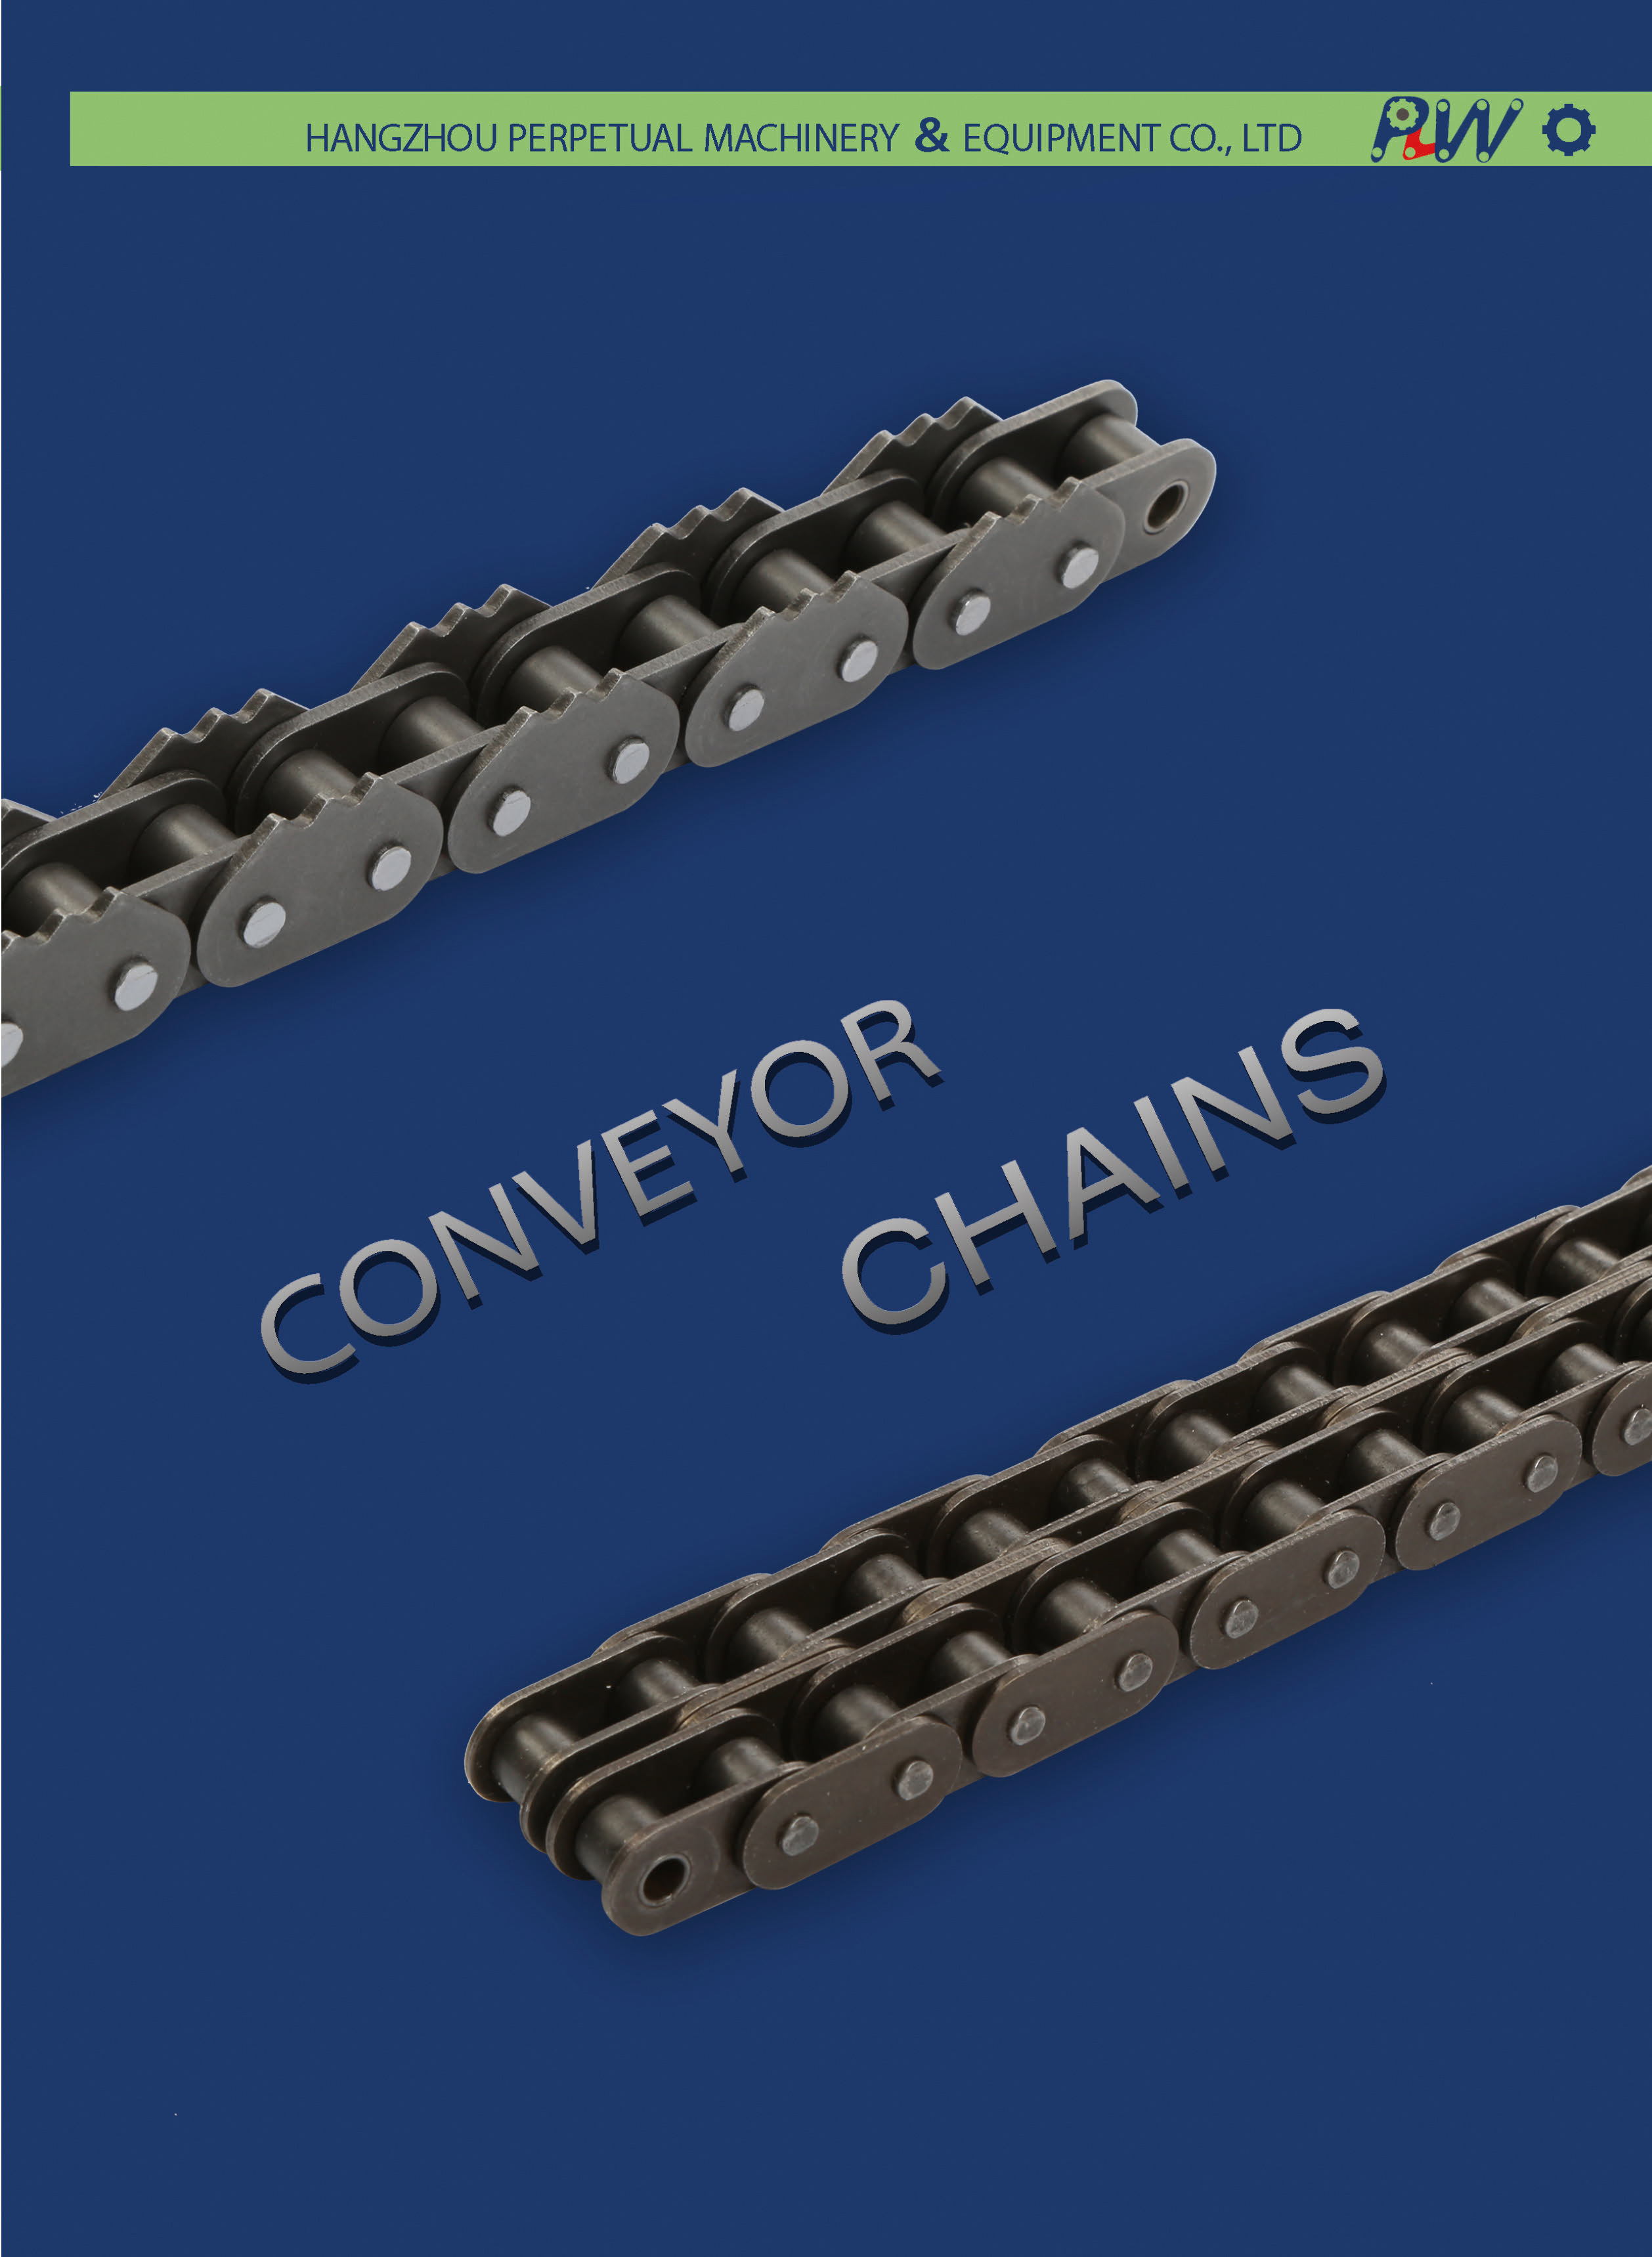 CONVEYOR CHAINS 23-42